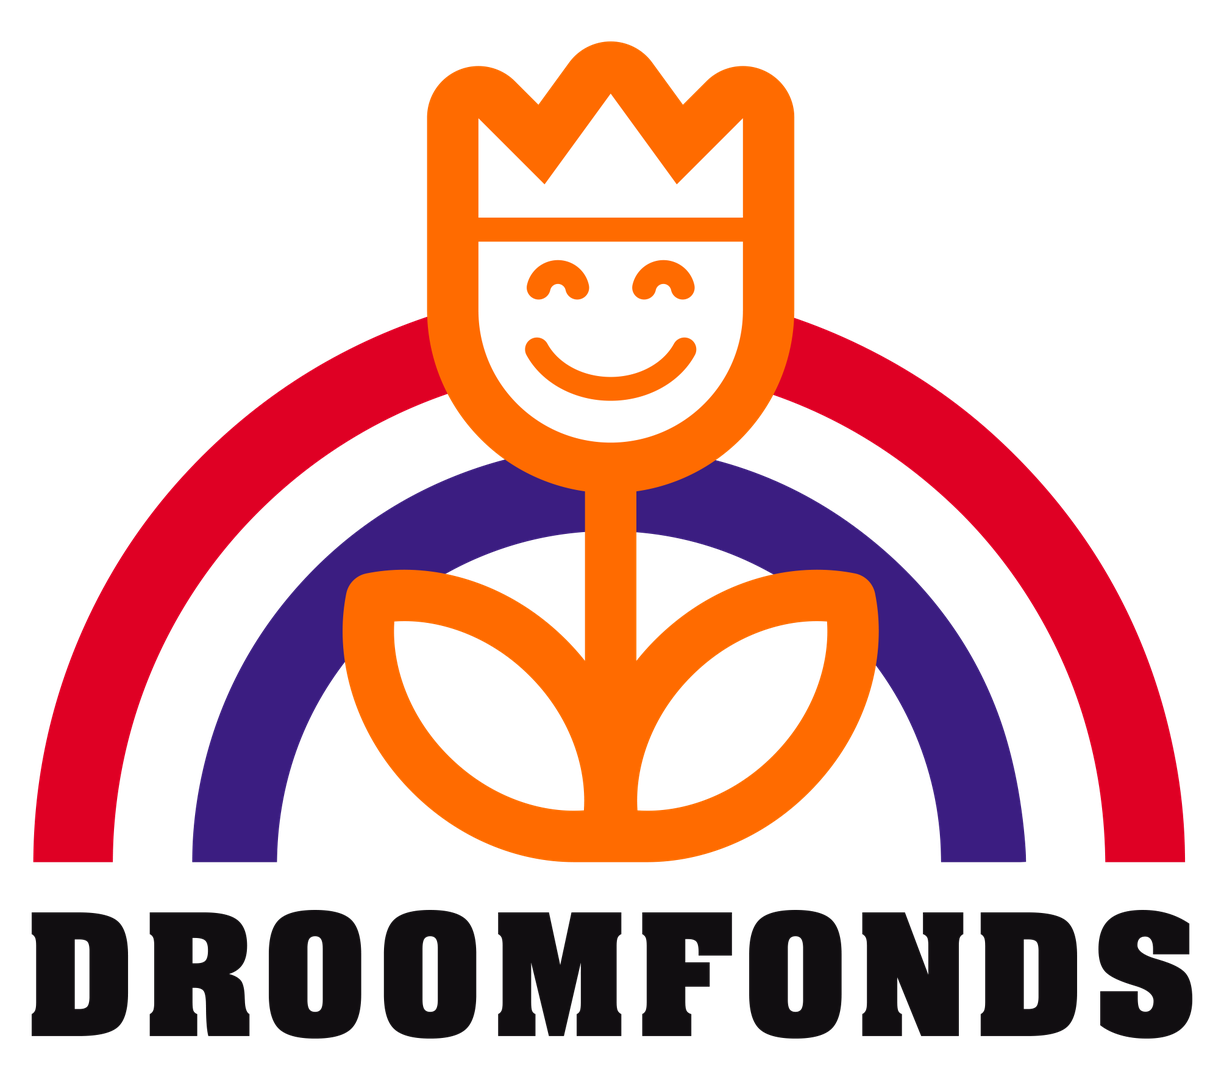 Droomfonds, het hartverwarmende fonds van en voor Nederland. Een nog in ontwikkeling zijnde fonds. Een kansrijk idee van Communicatie-expert, specialist in marketing en communicatie in Almere.